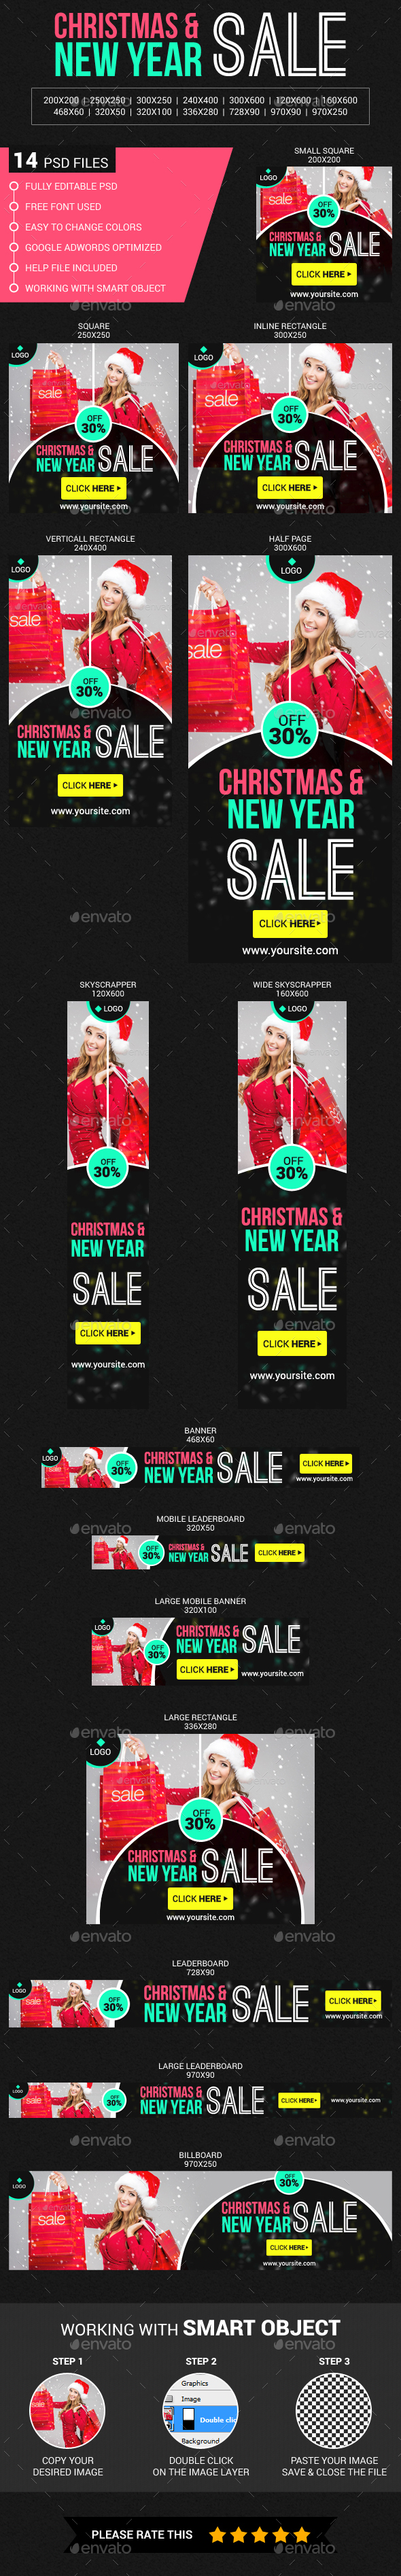 Christmas & New Year Sale - Banners & Ads Web Elements